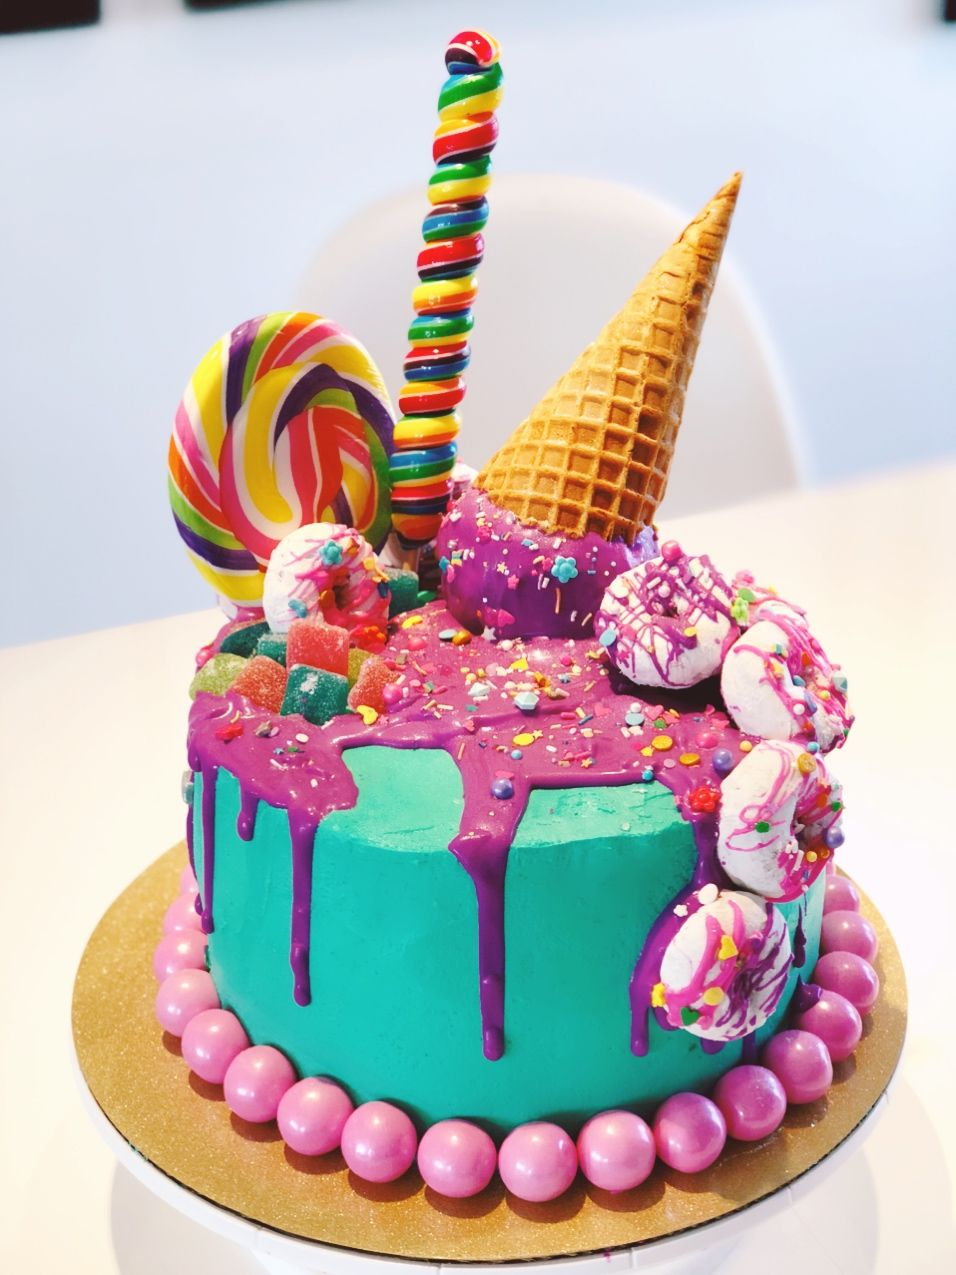 Stupendous My Fave Cake Ive Ever Made Melted Ice Cream Cone Candy Cake Personalised Birthday Cards Paralily Jamesorg